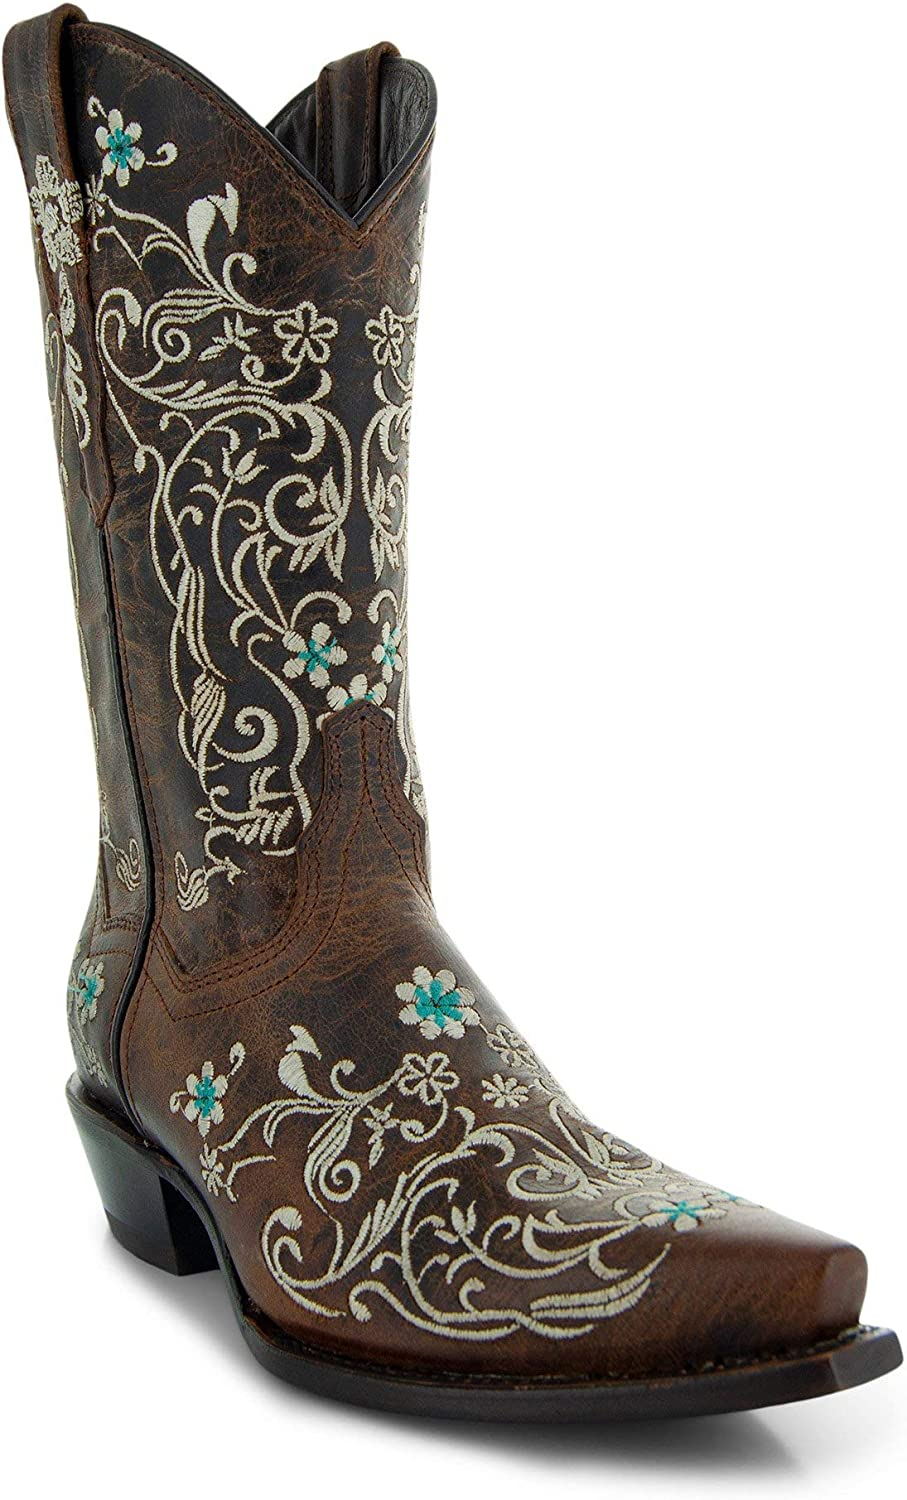 Women's Soto Boots Dahlia Vintage Flower Embroidery Cowgirl Boots M50042